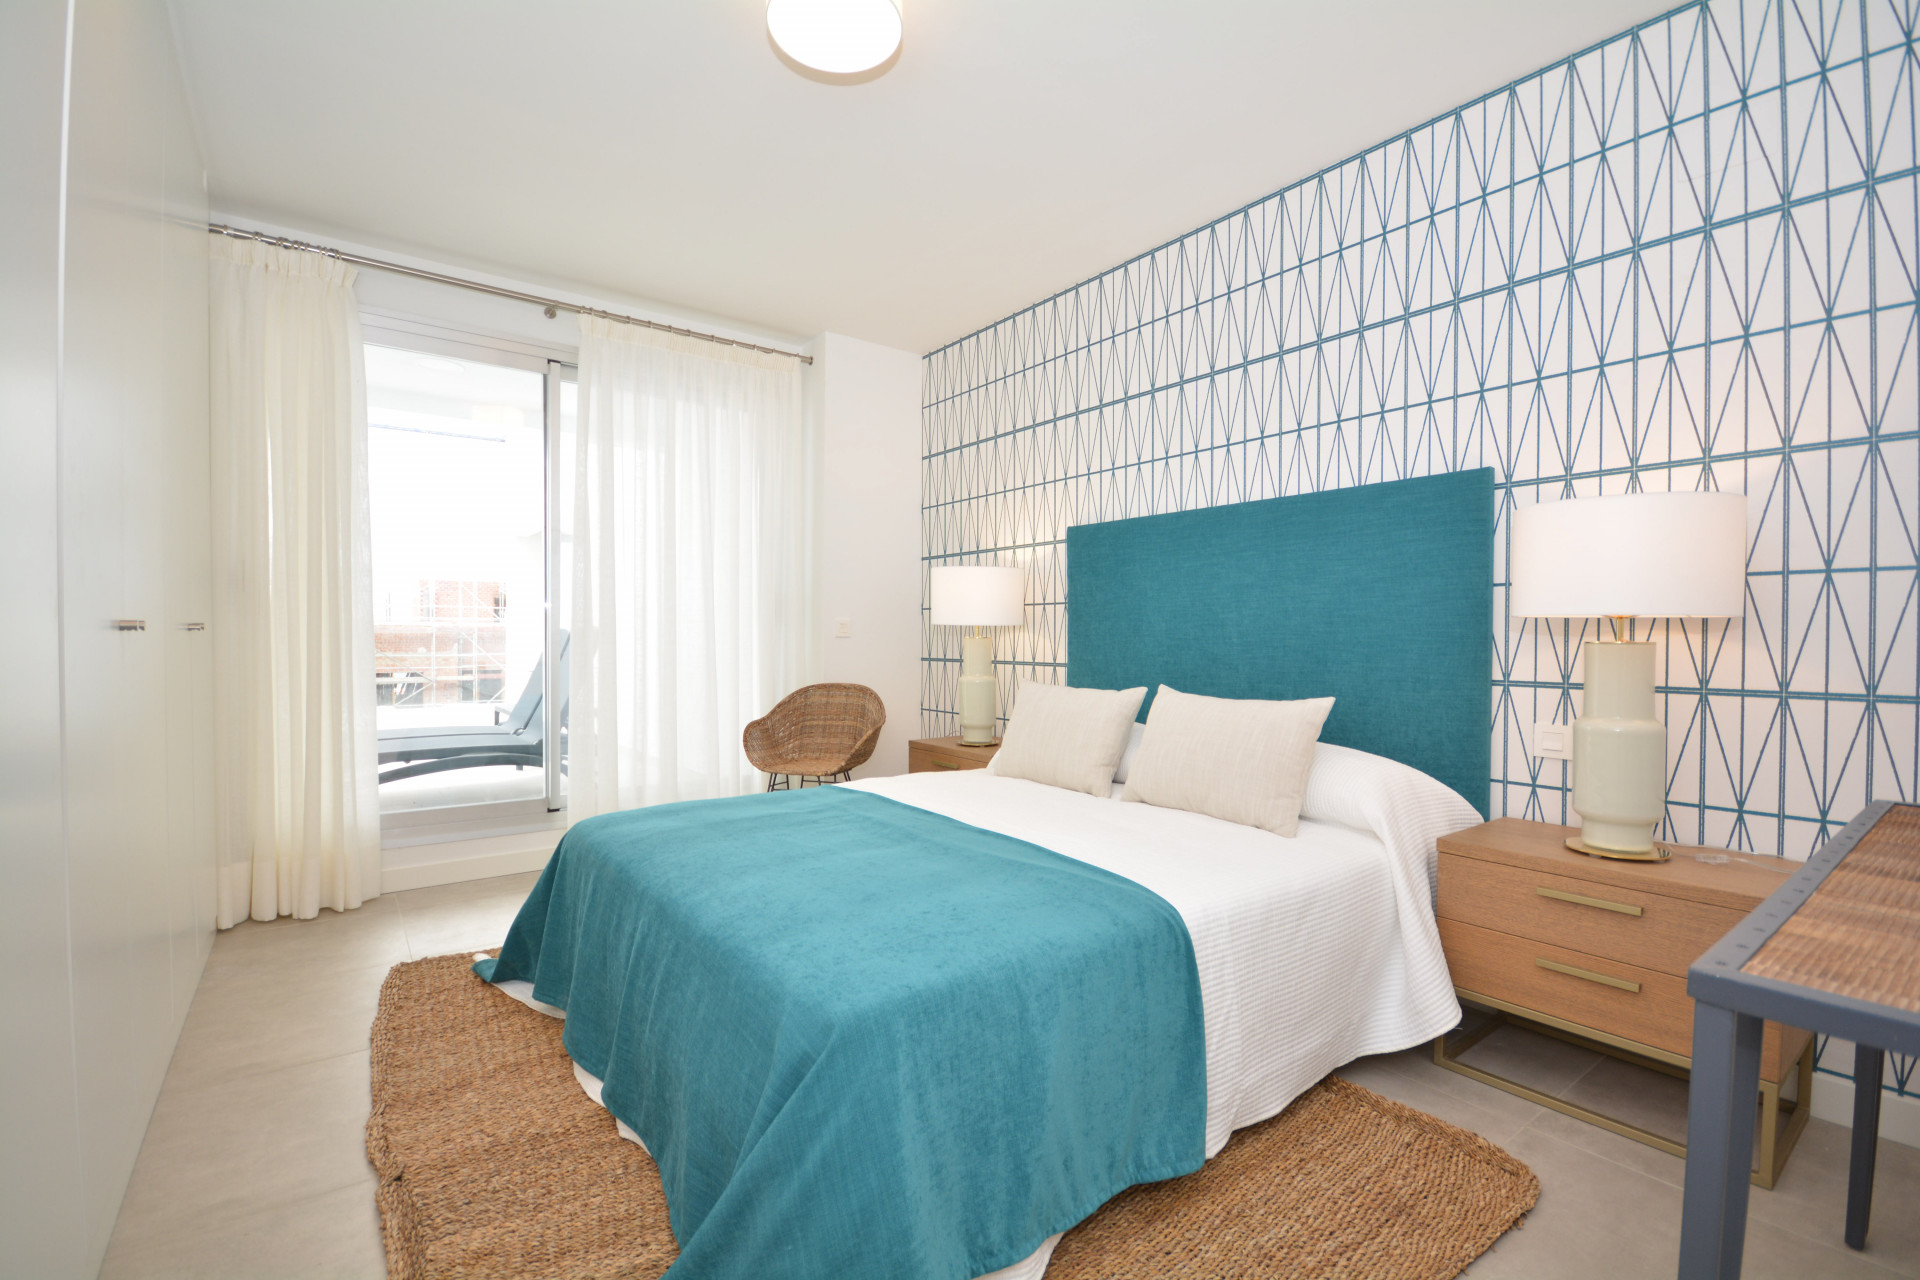 New modern apartments for sale in Benalmadena